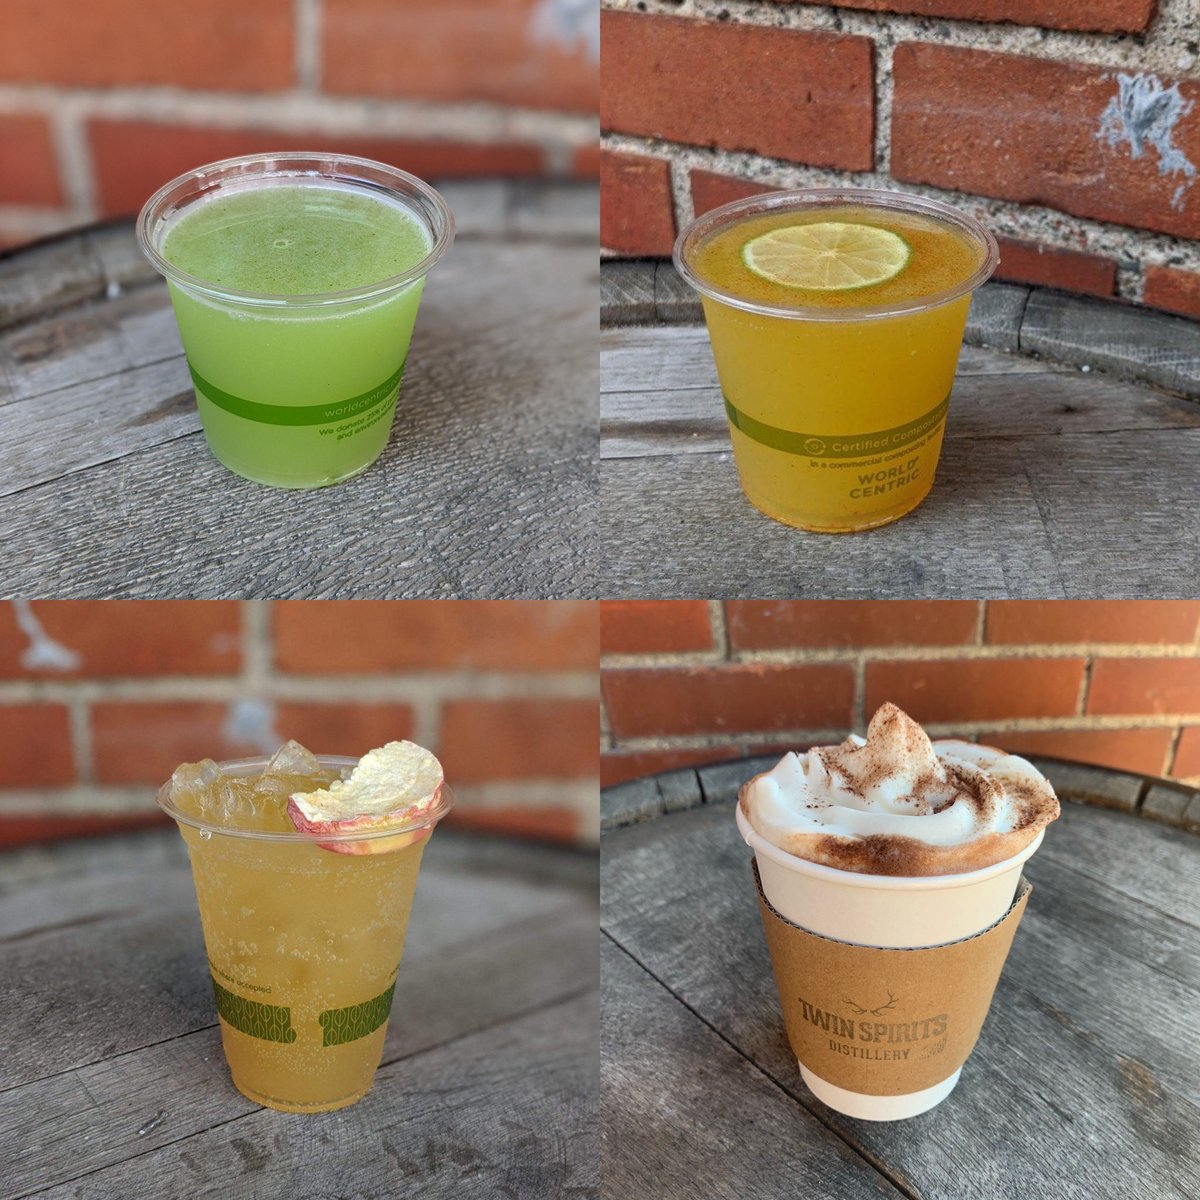 Yummy drinks can be at your socially distanced table on our patio on this glorious fall day/evening! #womanowned #womenmade #womenbartenders #womendistillers #northeastminneapolis #bestofmn